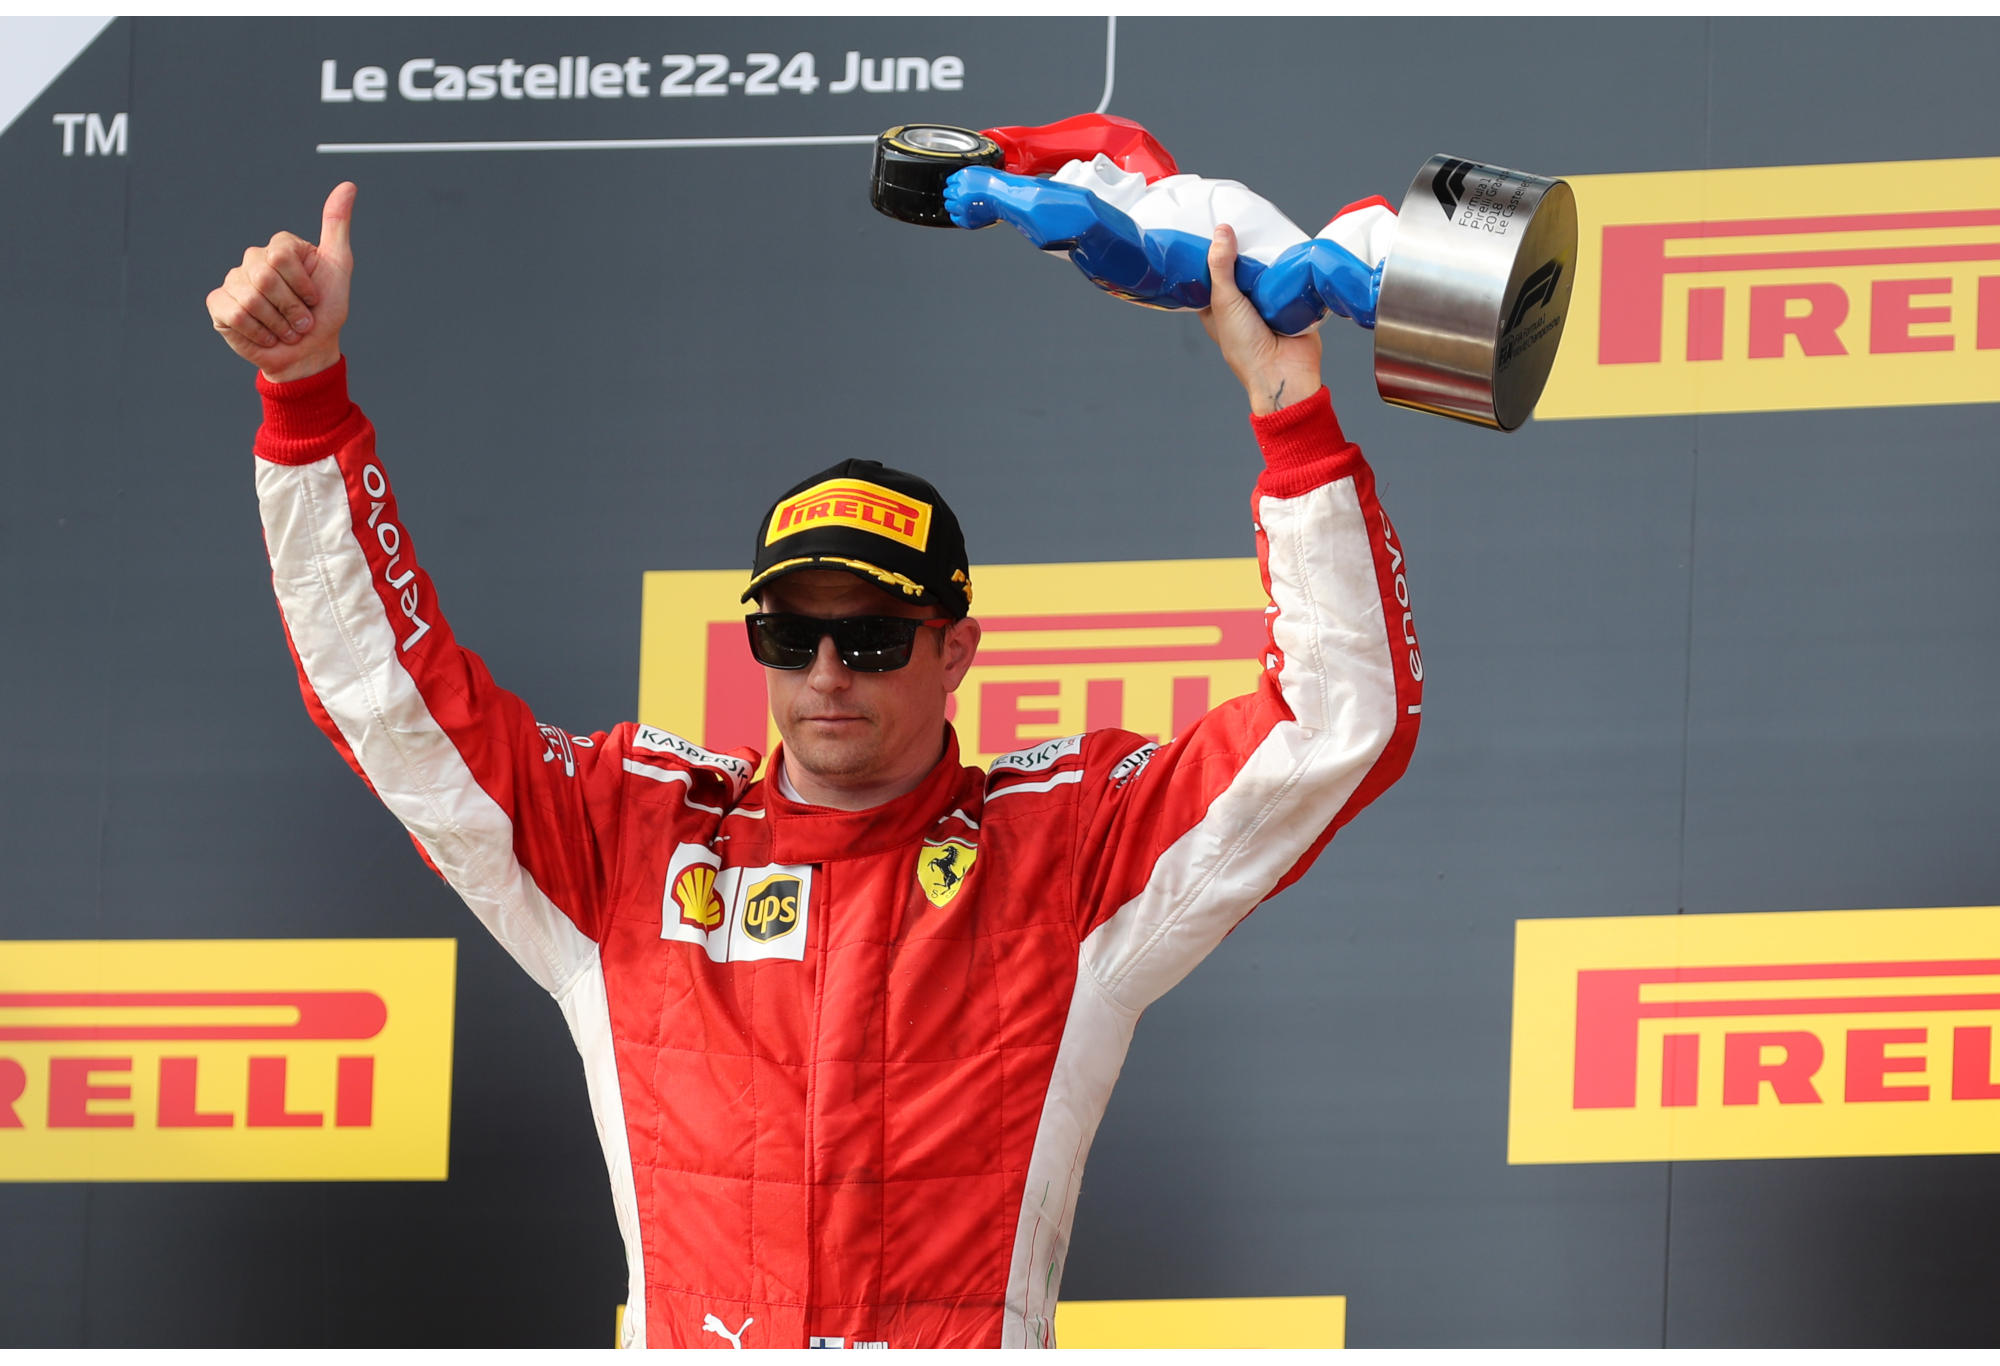 Ferrari's Kimi Raikkonen celebrates on the podium